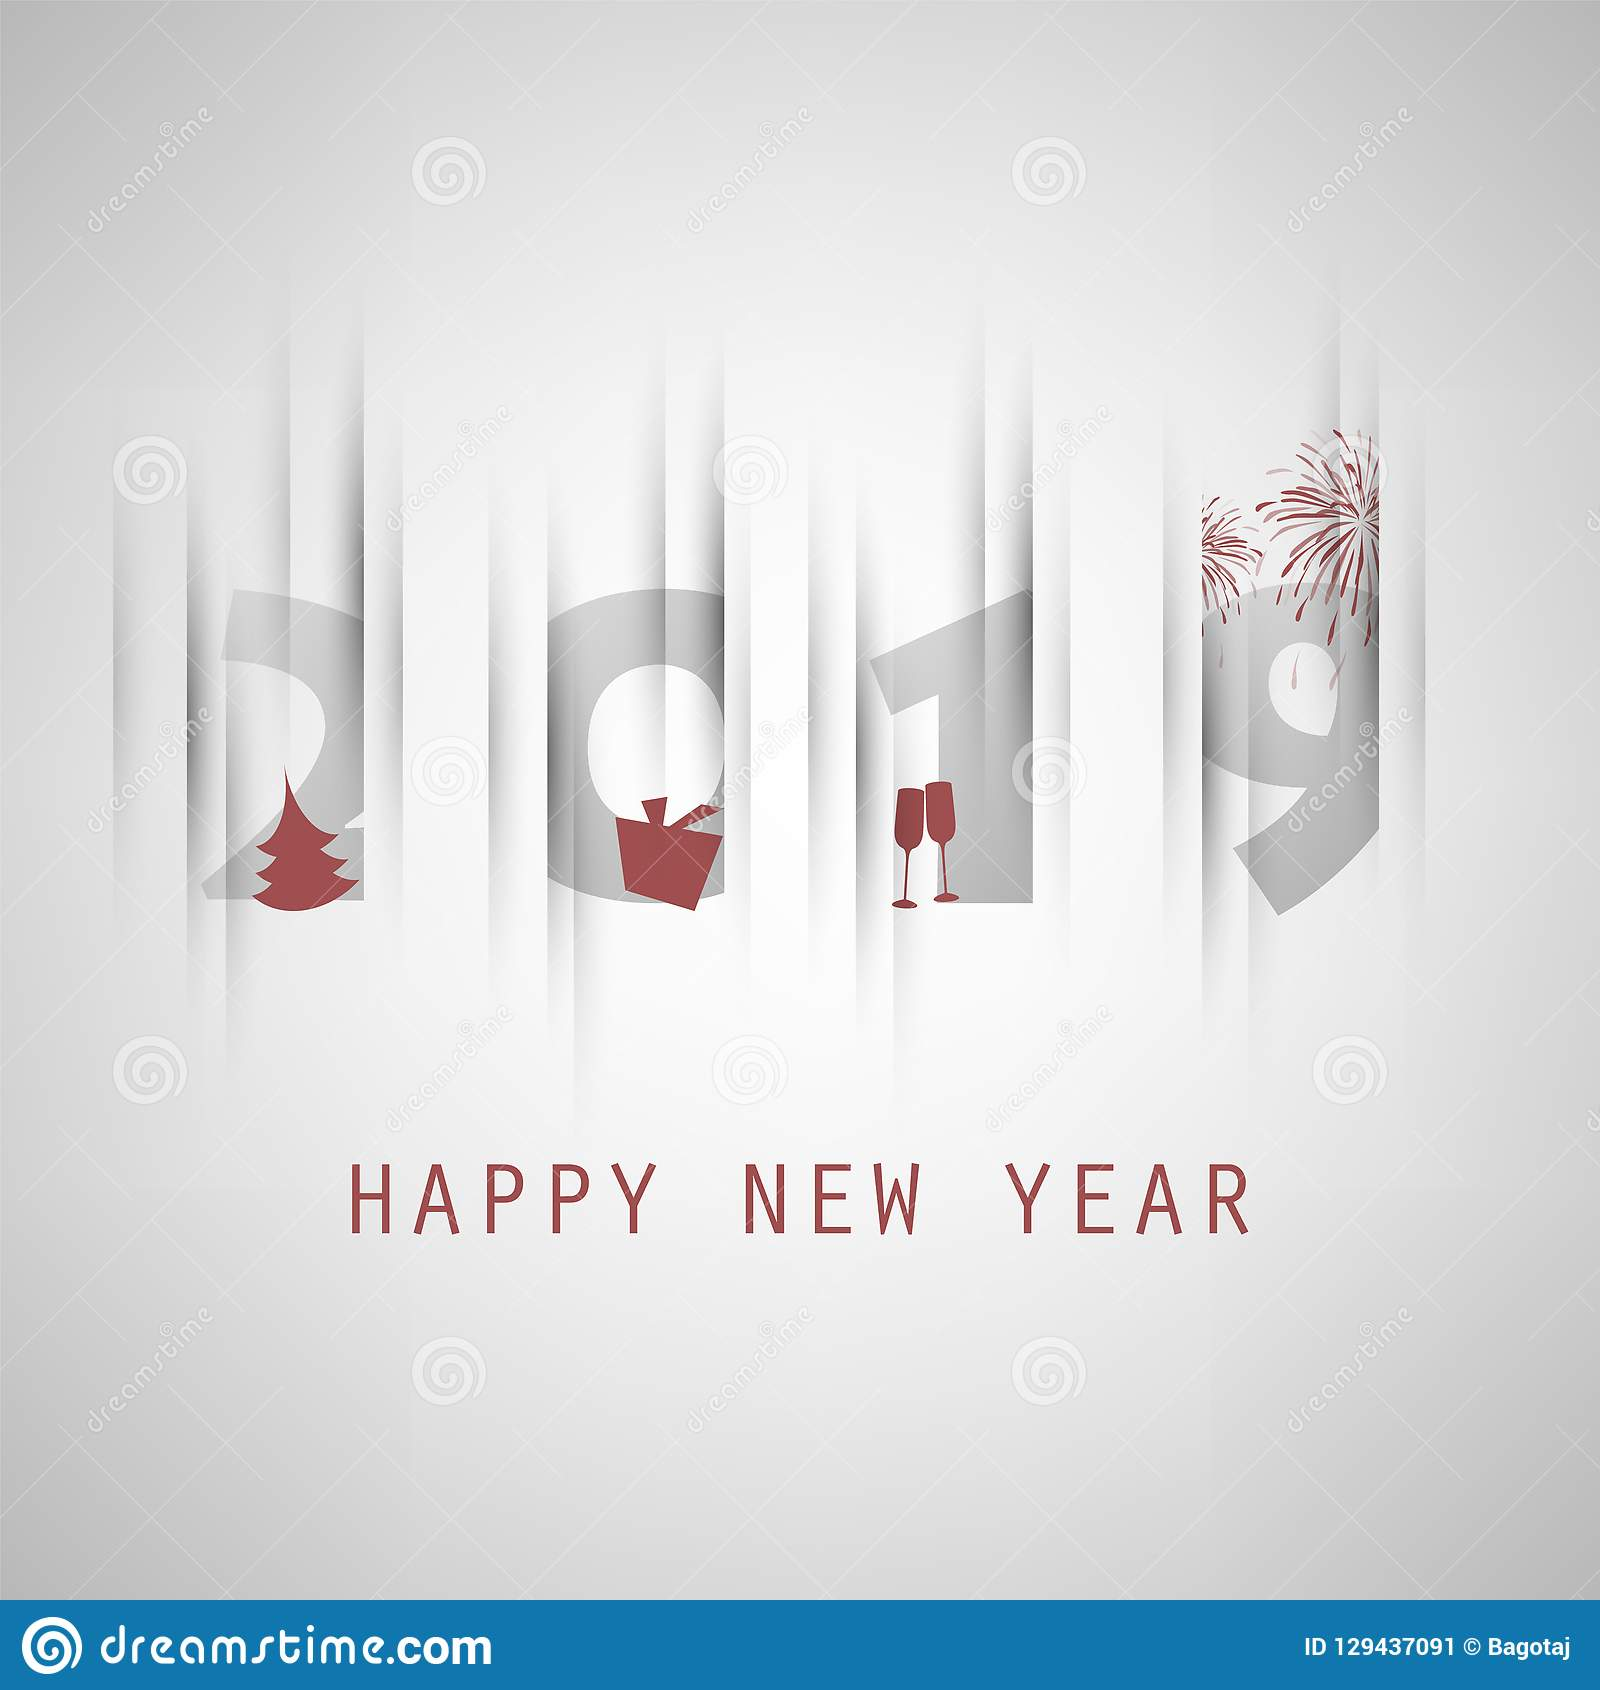 best wishes simple grey and red new year card cover or background design template